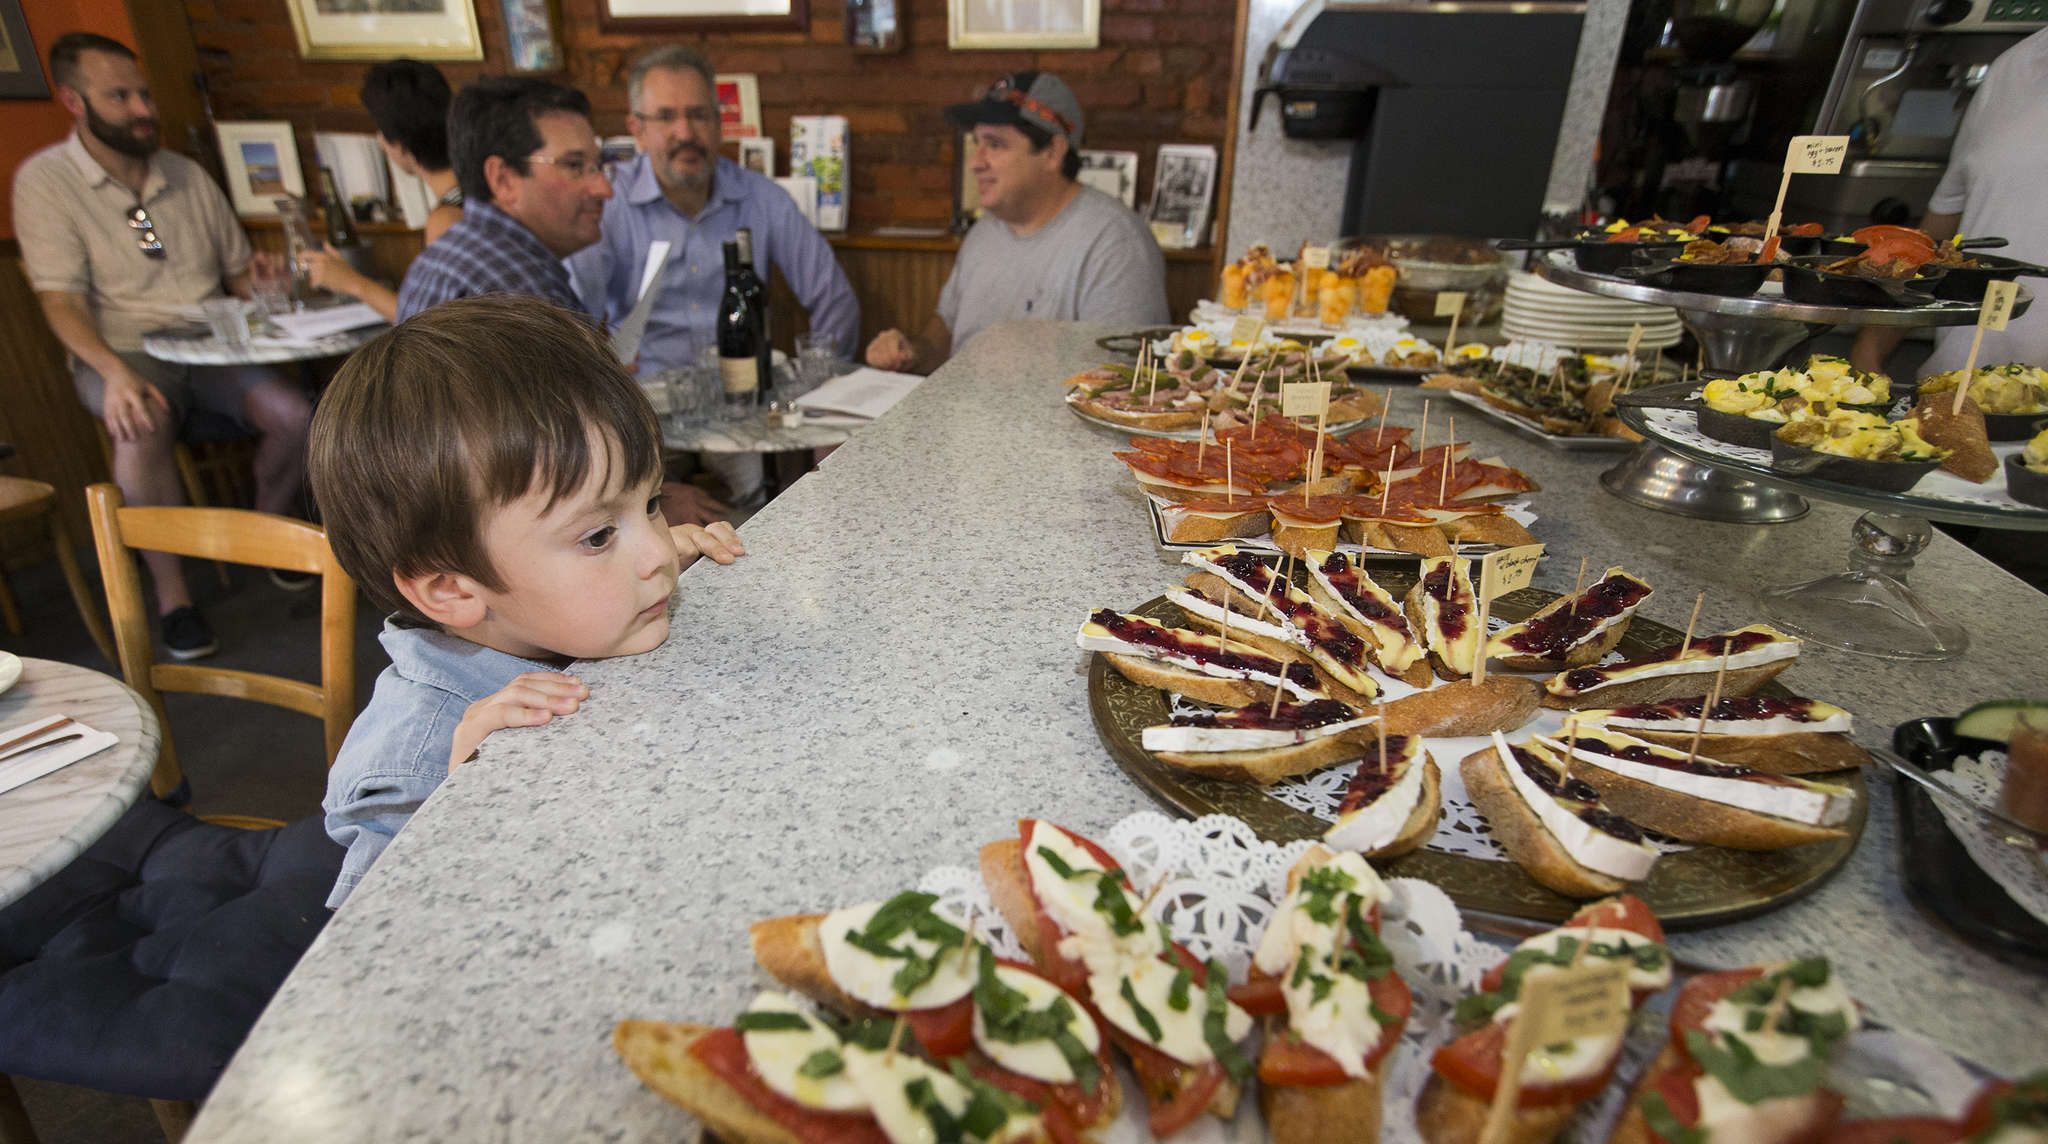 Café Lutecia, a longtime breakfast-lunch spot in Fitler Square, has begun serving Basque-French tapas dinners on Tuesdays only. Ogden Snow, 3, looks over the evening´s offerings of small plates of appetizers on the wraparound counter.